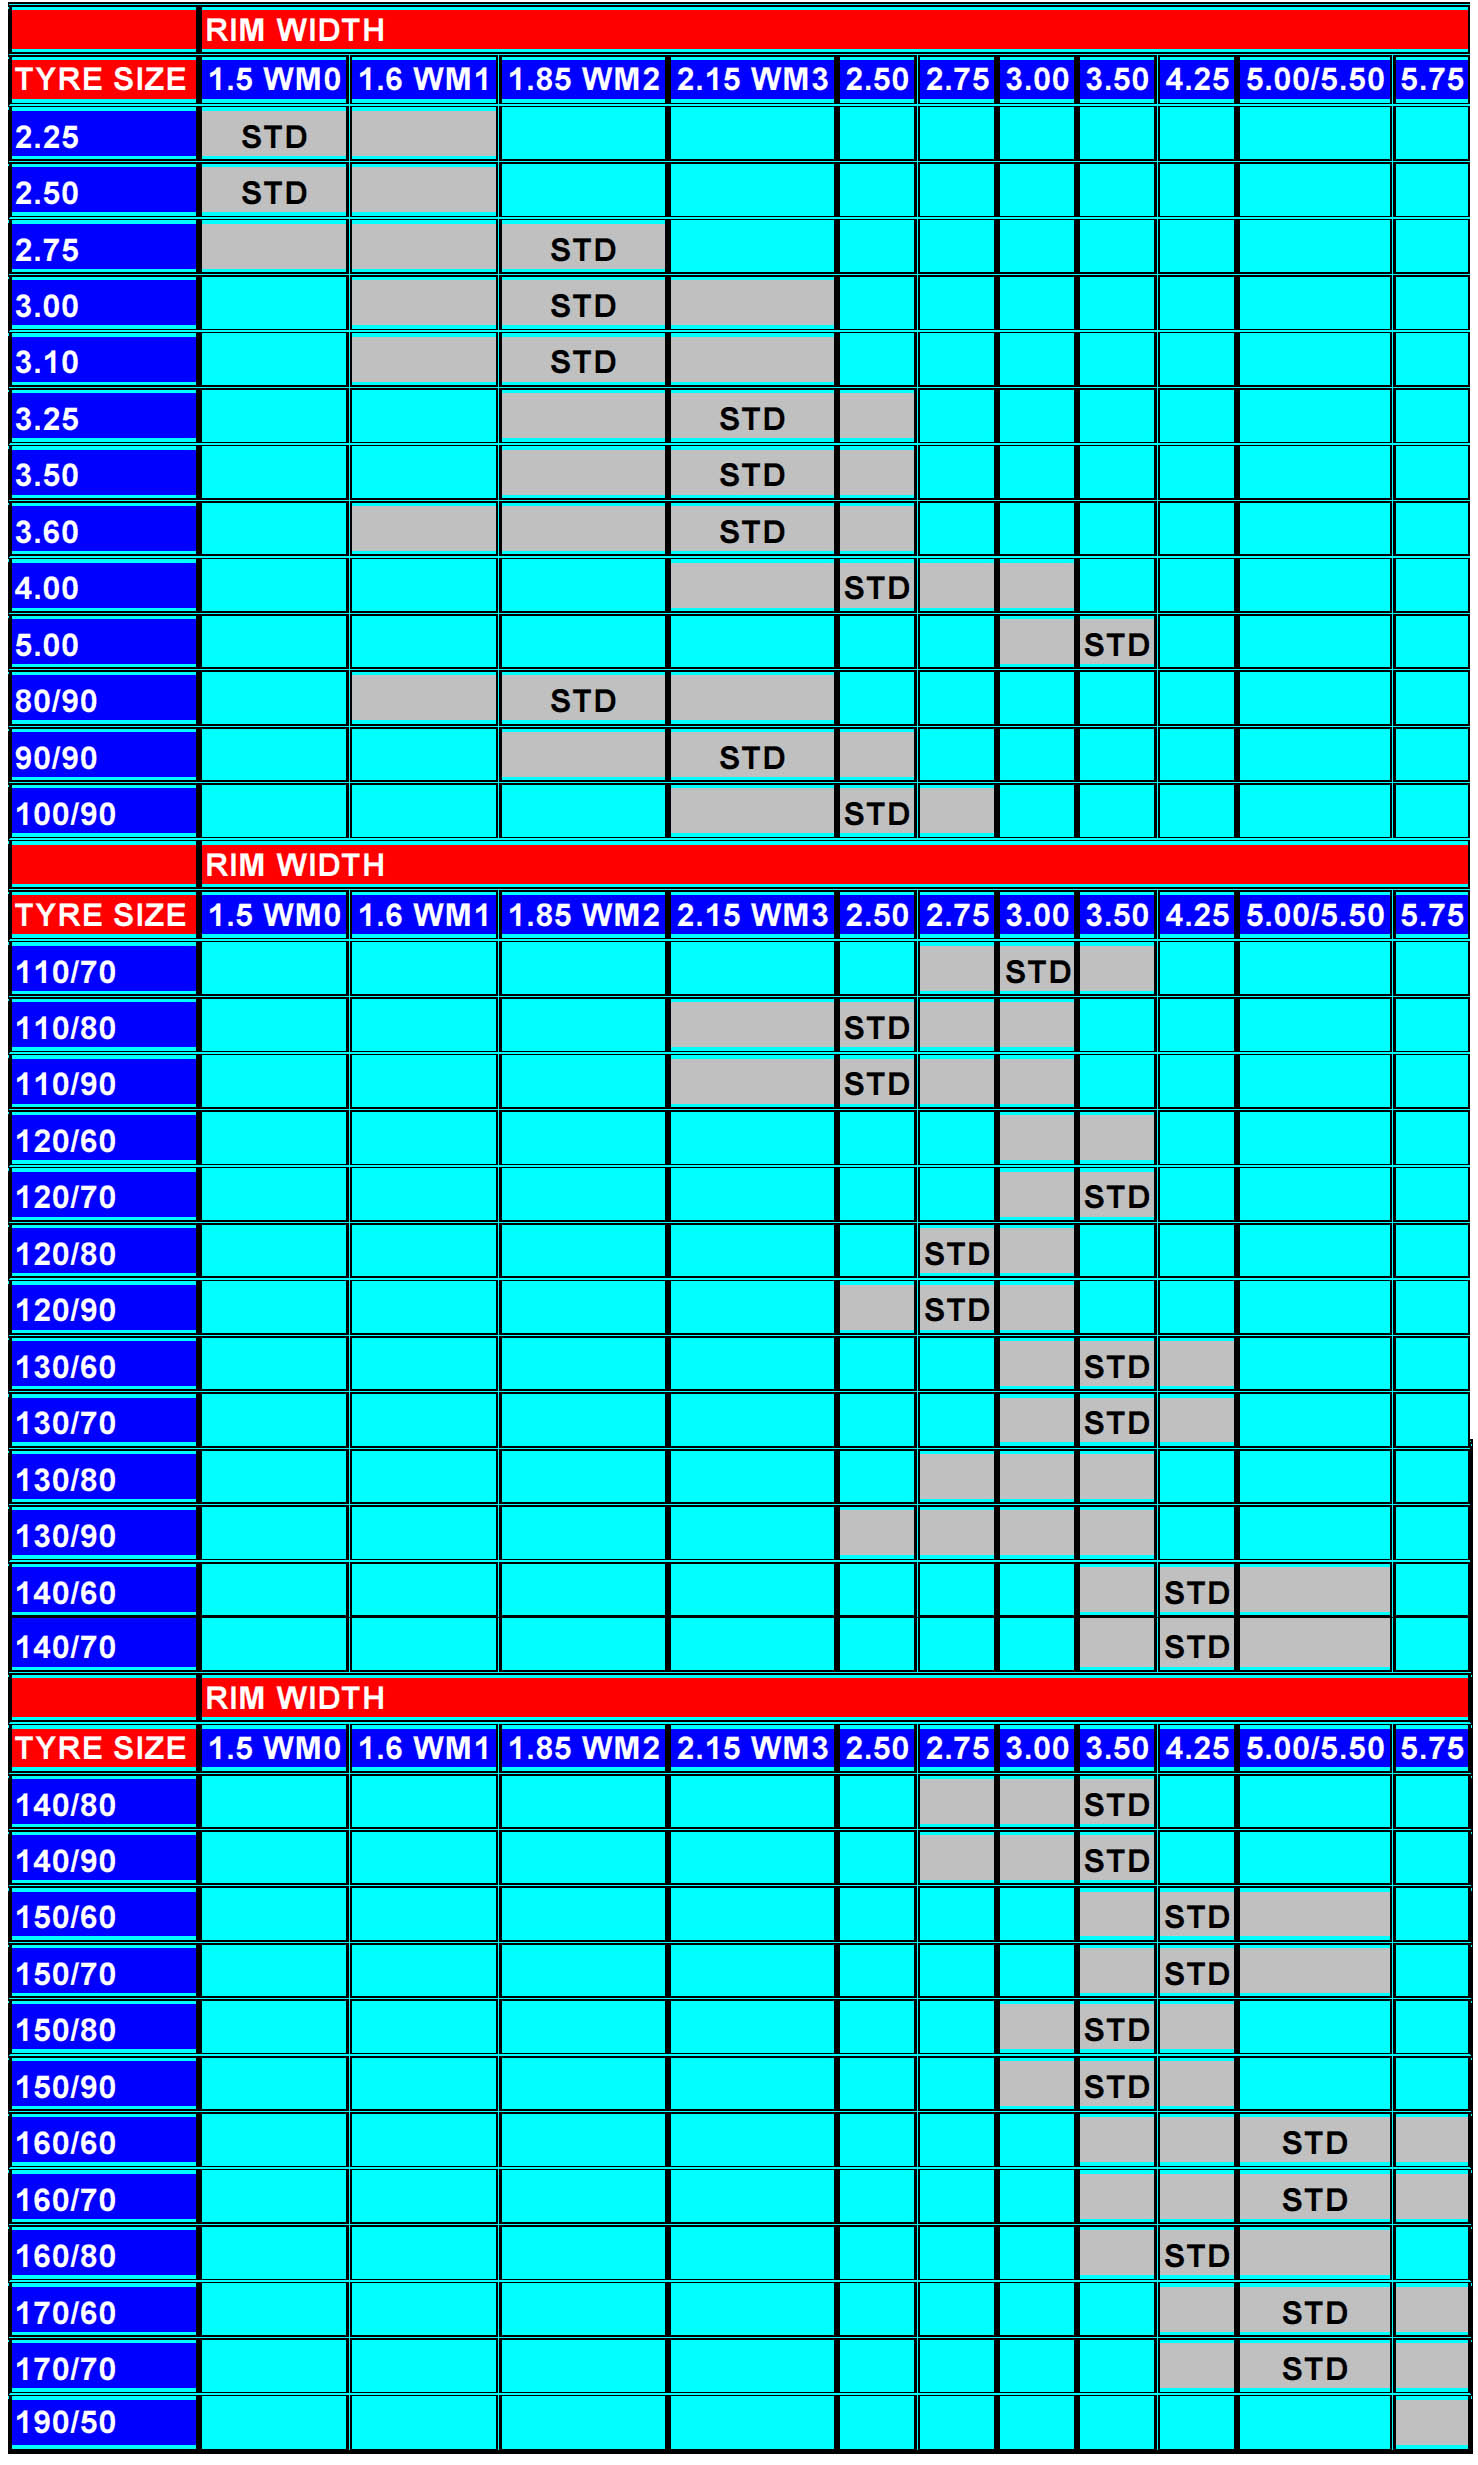 2126d1391451096 Wheel Rim Tire Sizing Important Considerations Recommend Tire Size 1 Jpg 1478 2465 Tyre Size Tire Chart